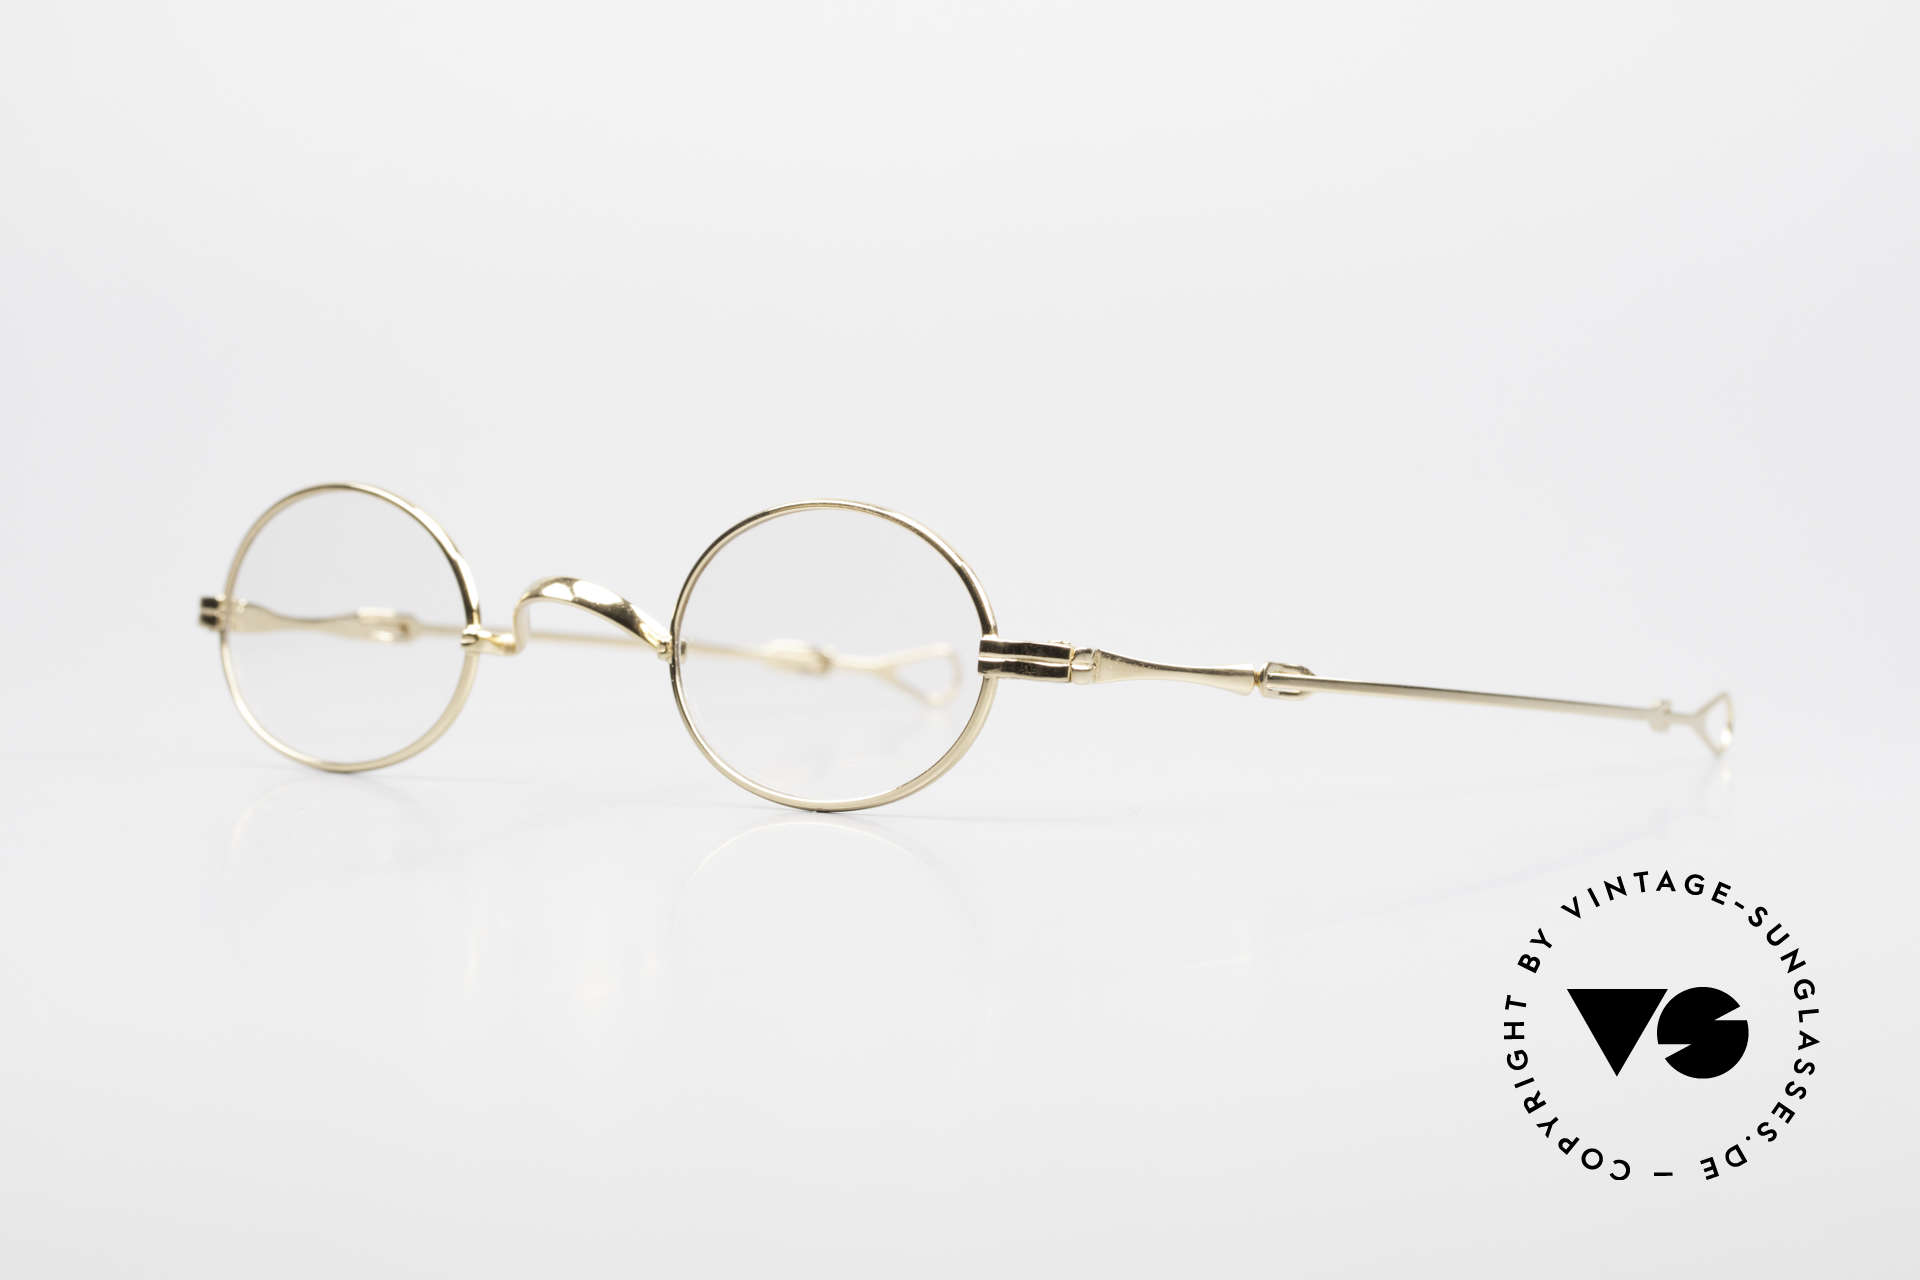 Lunor I 04 Telescopic XS Gold Glasses Slide Temples, model I 04 = size 37°26, temple length: 118mm - 155 mm, Made for Men and Women